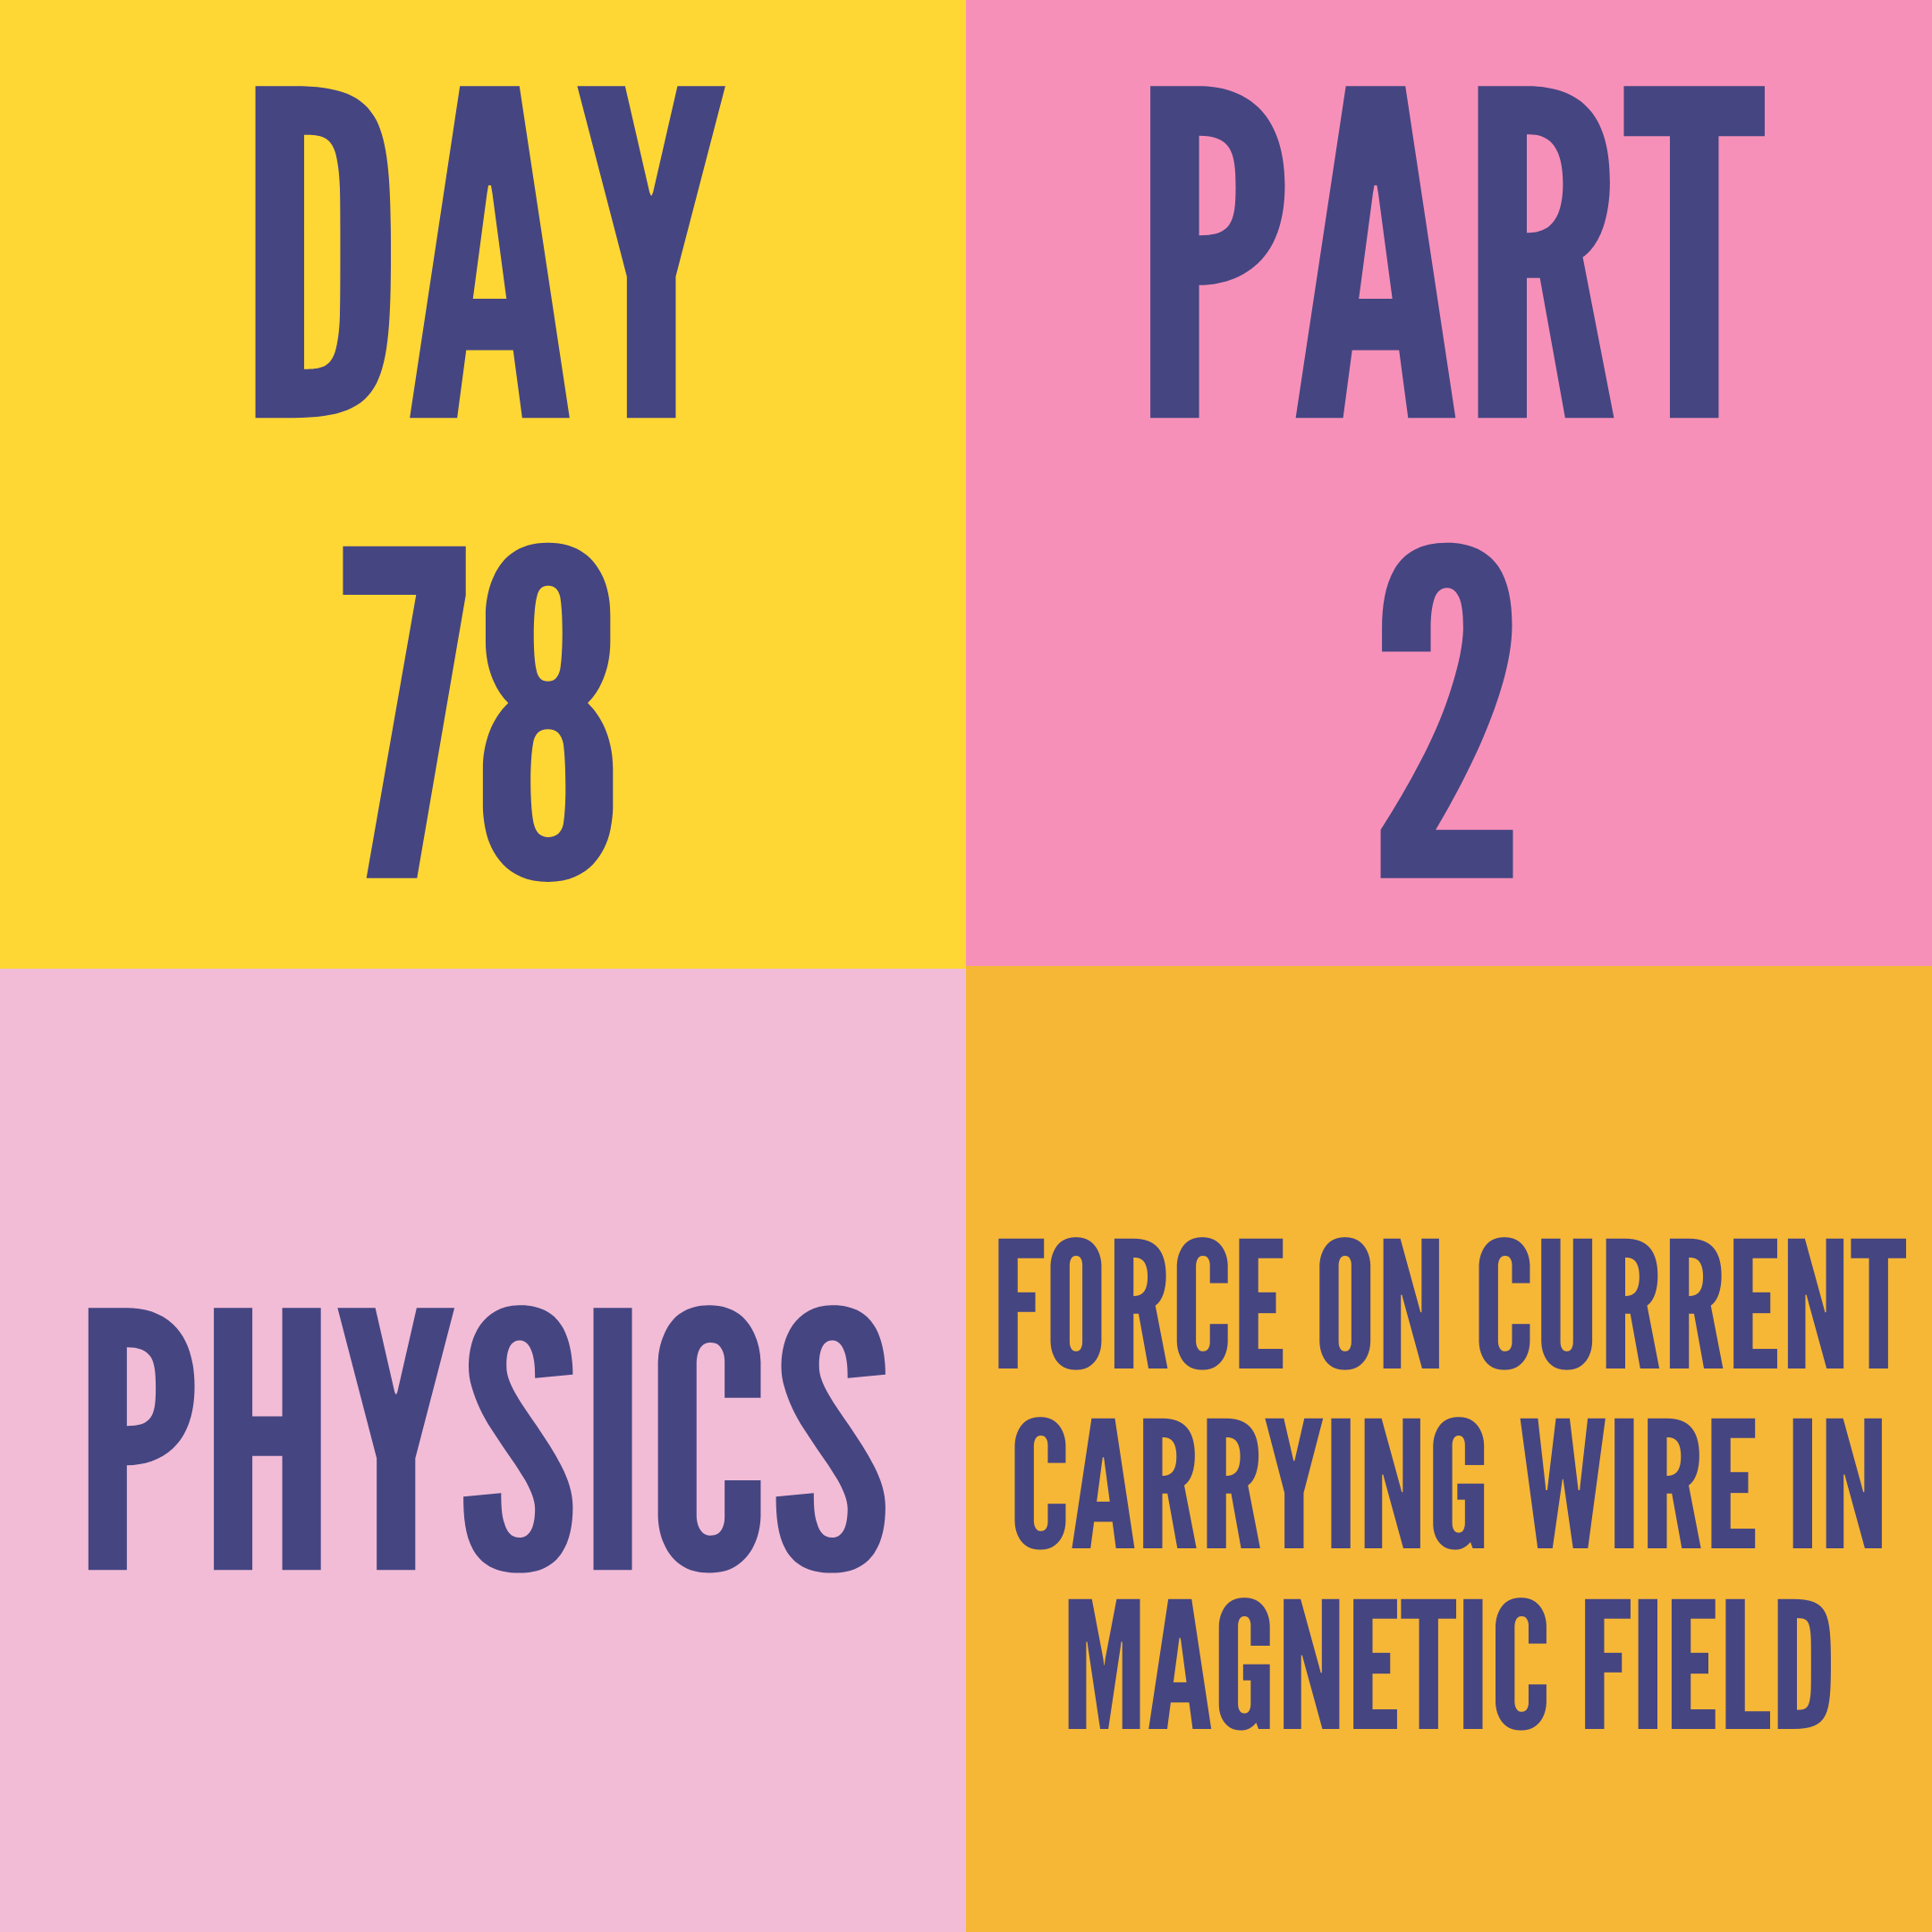 DAY-78 PART-2 FORCE ON CURRENT CARRYING WIRE IN MAGNETIC FIELD